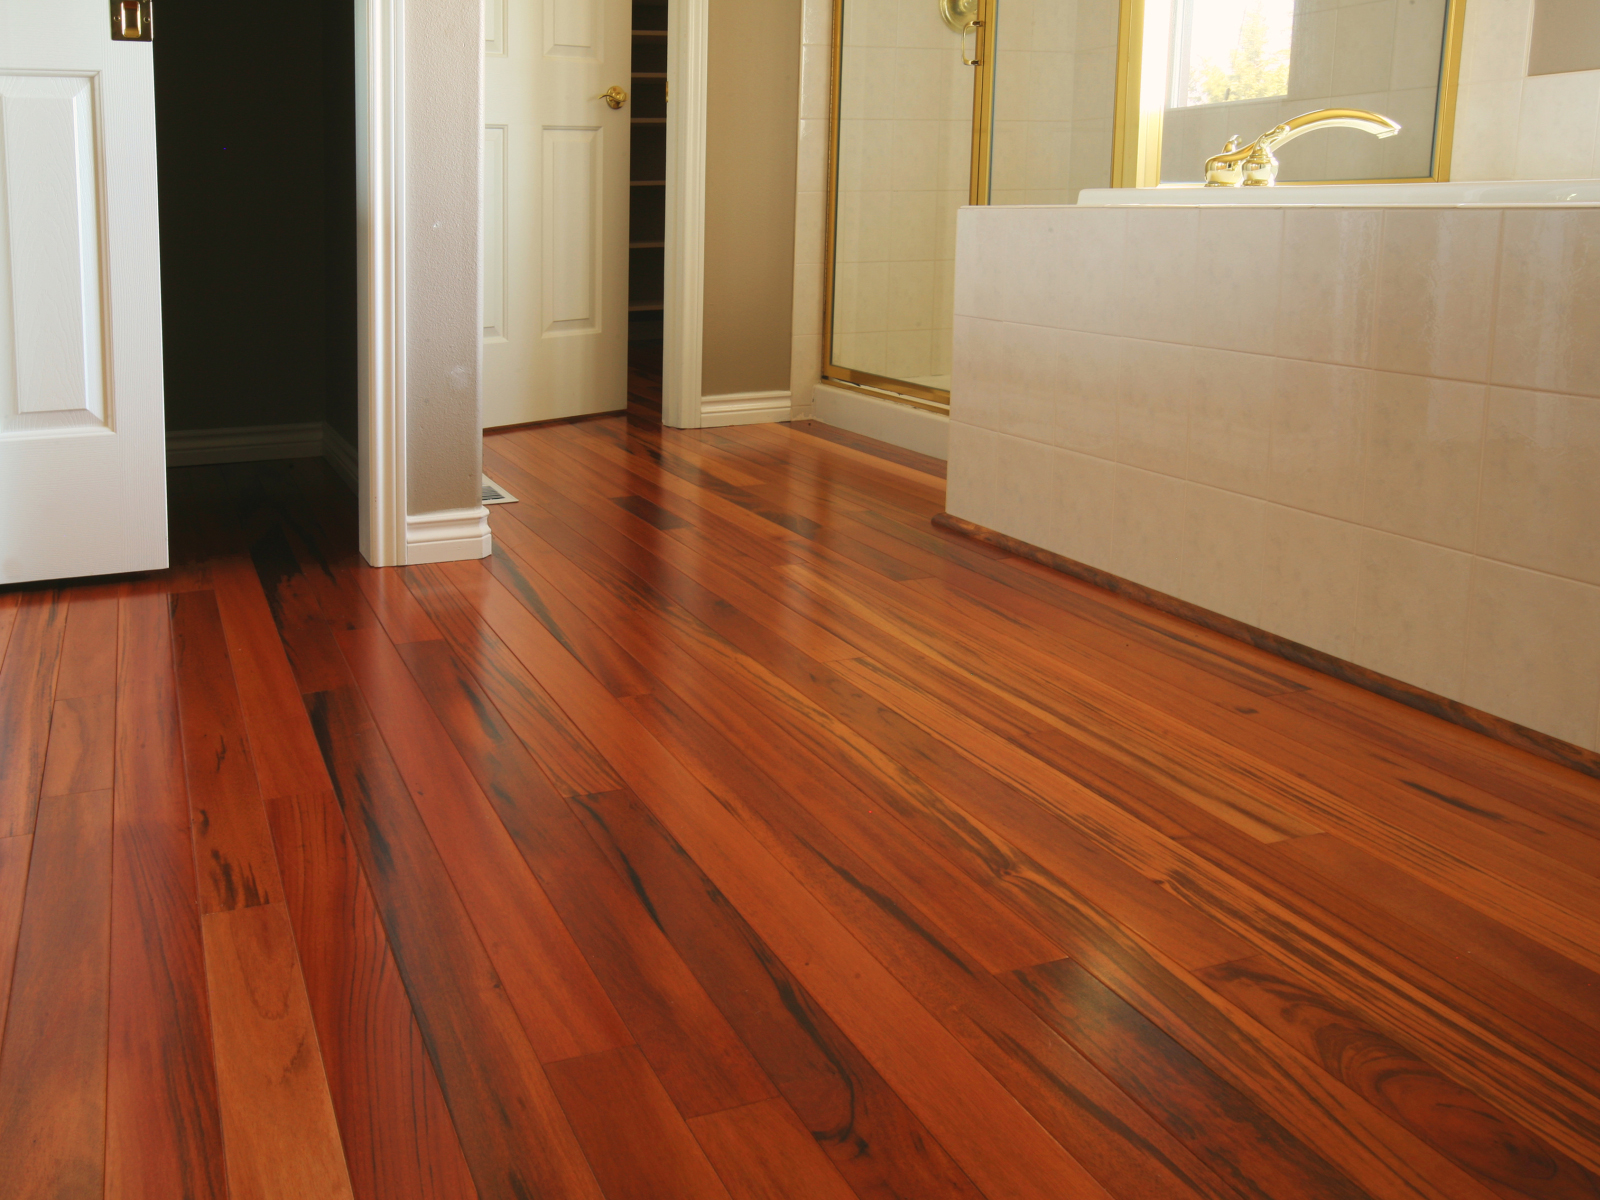 Wood Floor Cleaning San Diego 858 457 2800